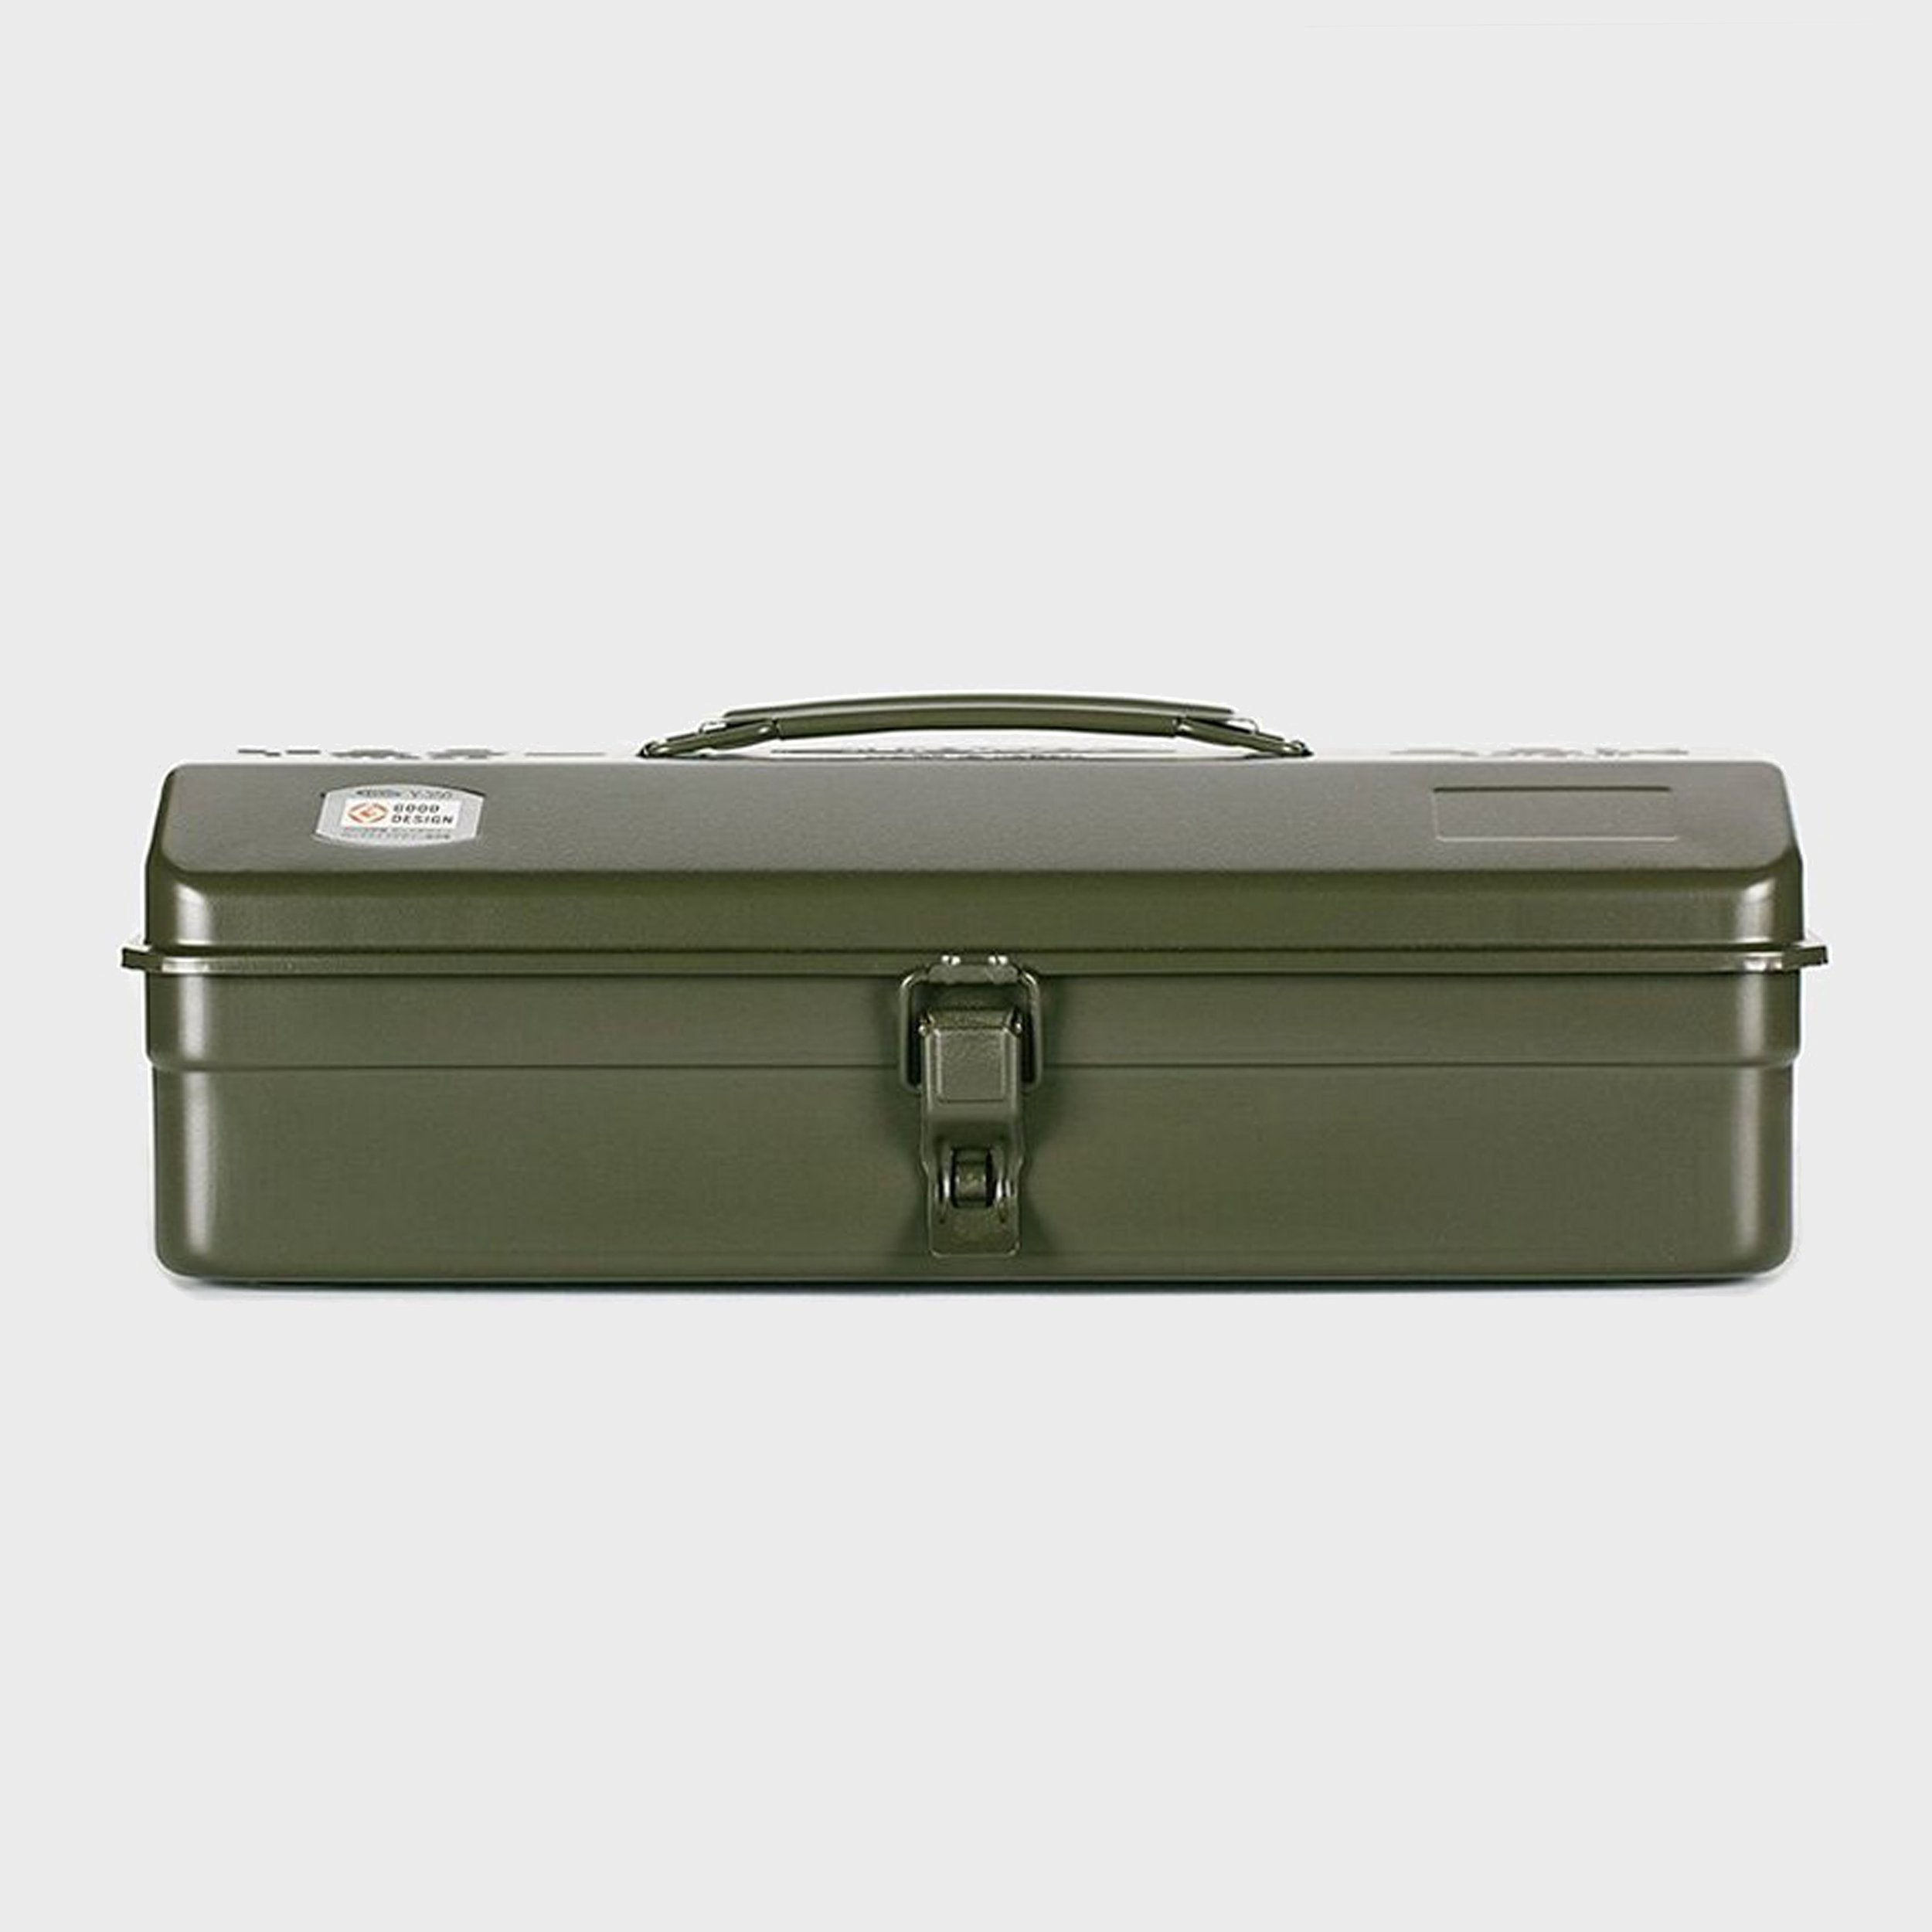 Steel Toolbox with Top Handle and Camber Lid, style Y-350